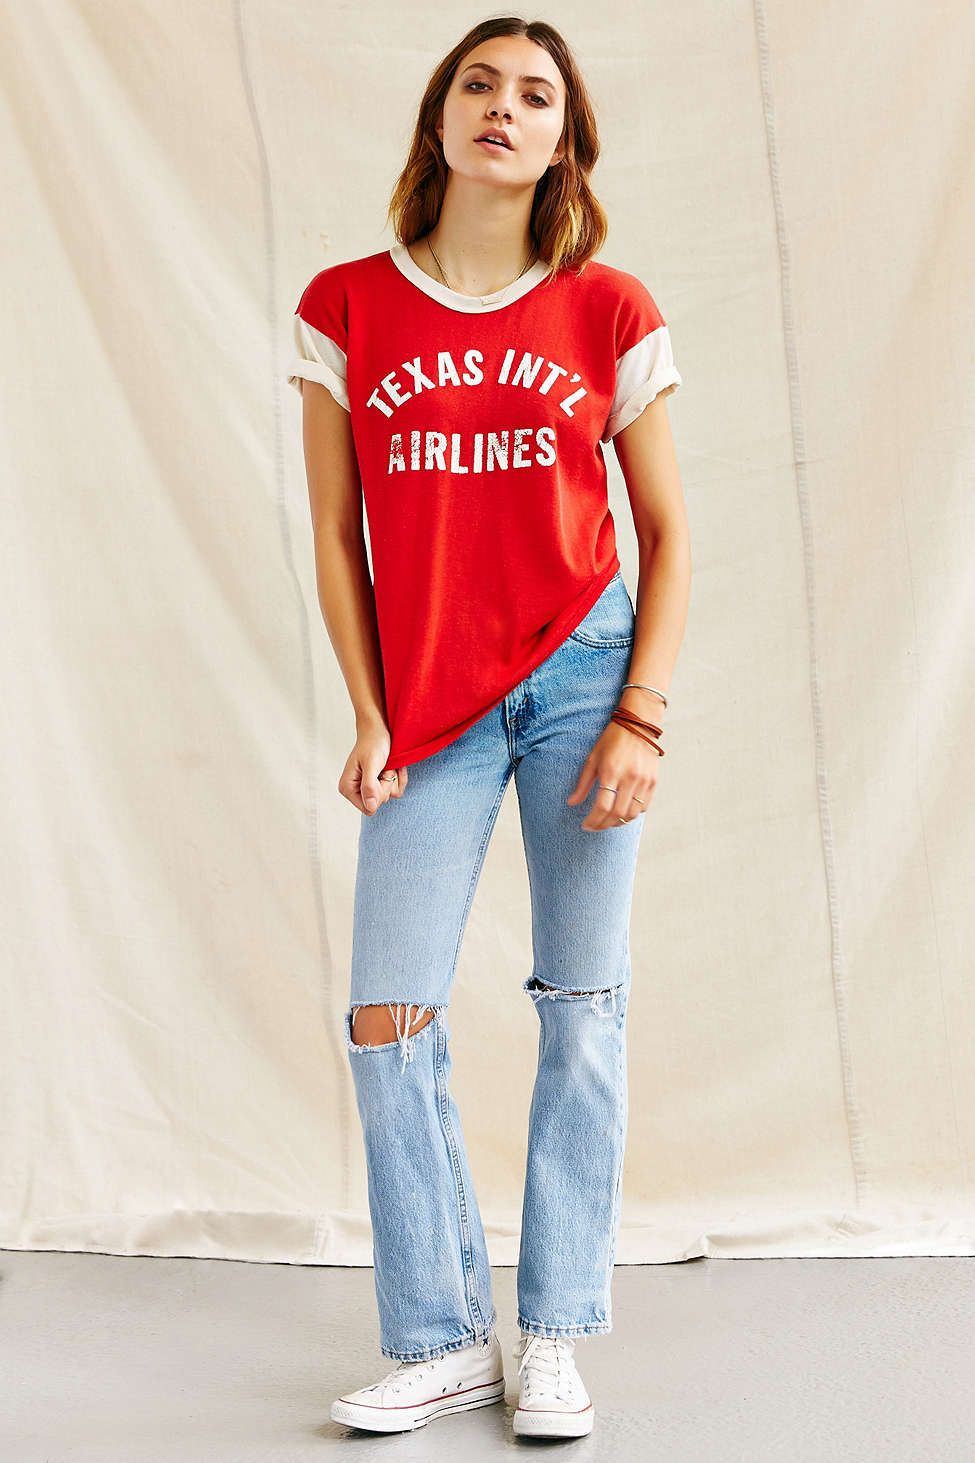 46++ Urban outfitters texas t shirt ideas in 2021